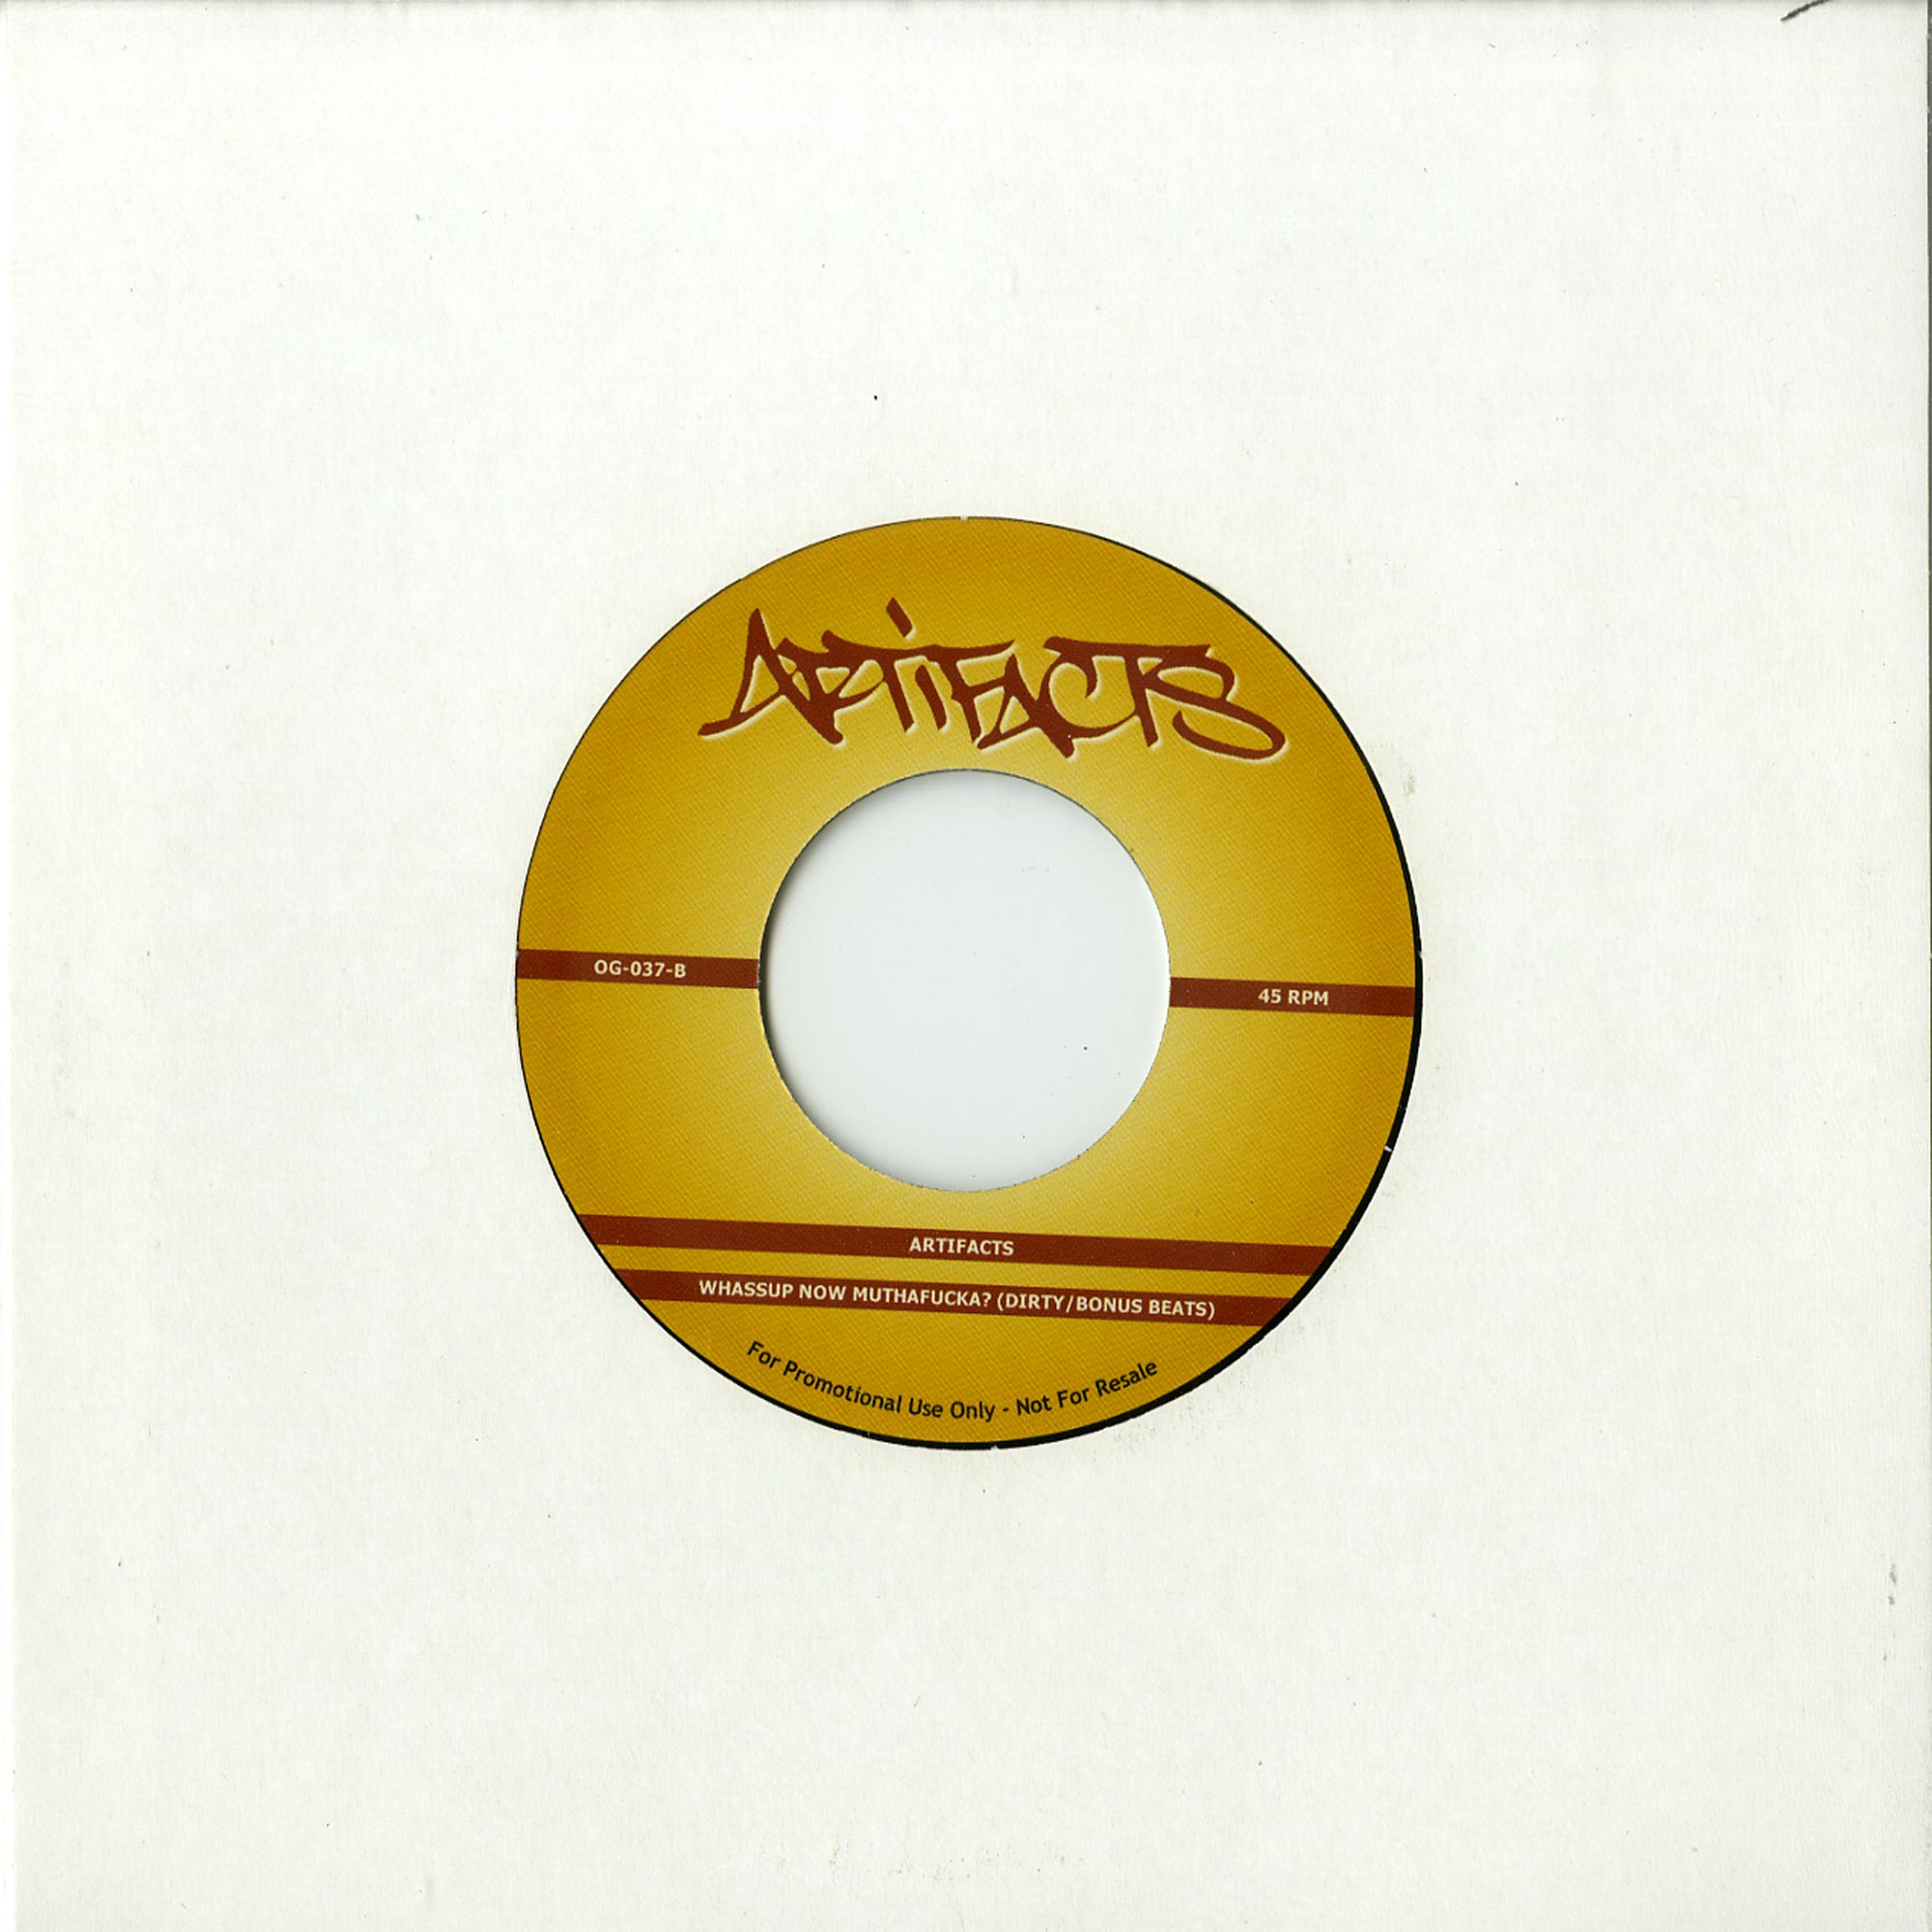 Joe Farrell / The Artifacts - UPON THIS ROCK / WHASSUP NOW MOTHAFUCKA